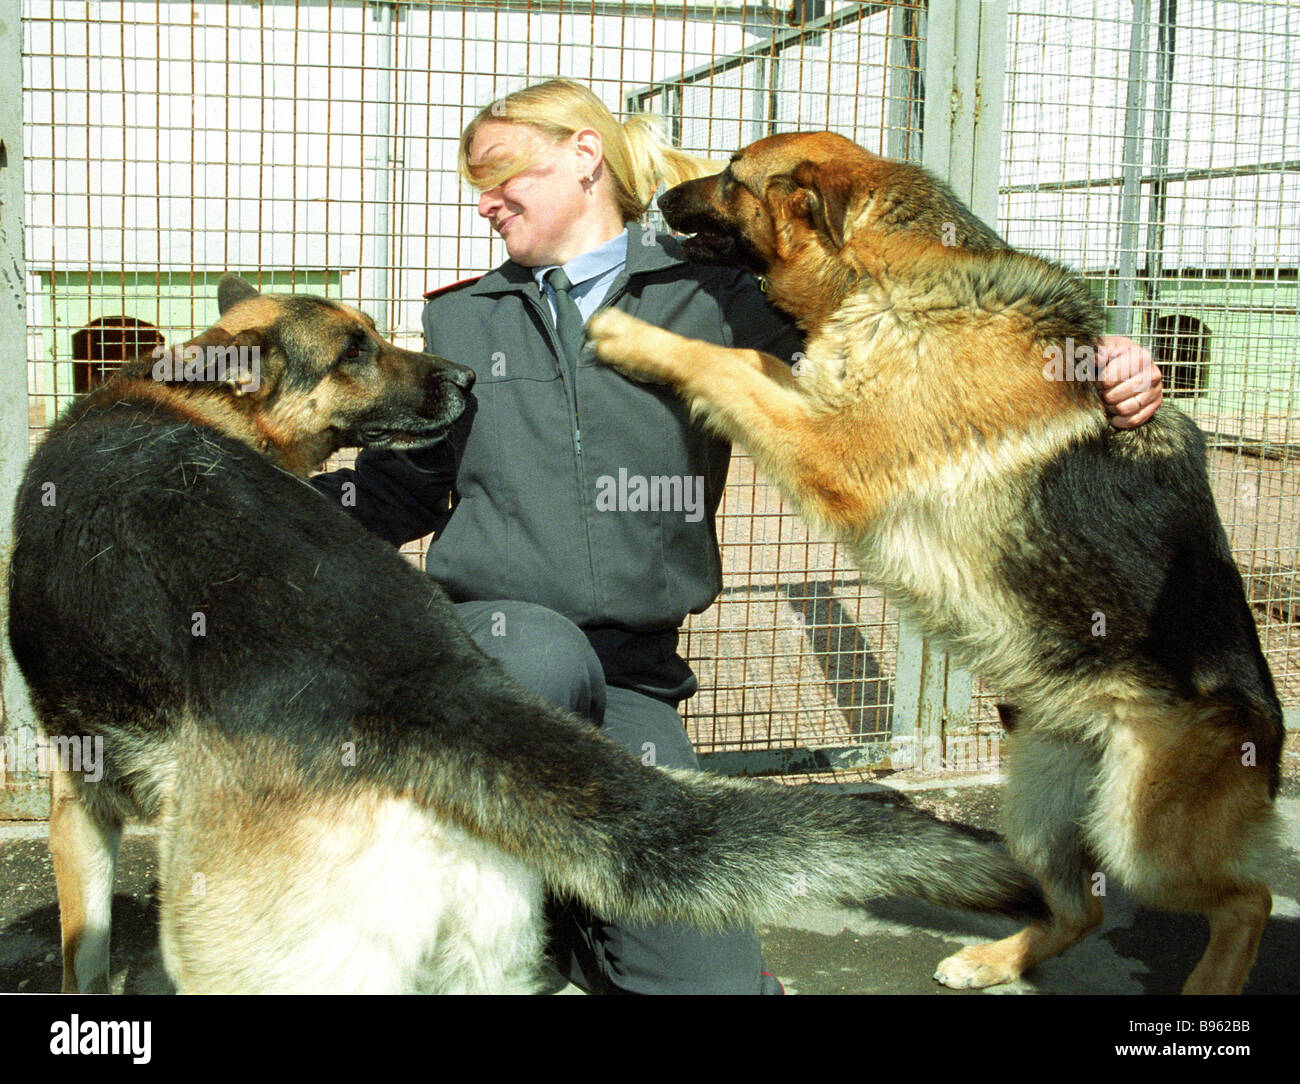 These animals are trained to detect munitions explosives and drugs Dog Training Center - Stock Image